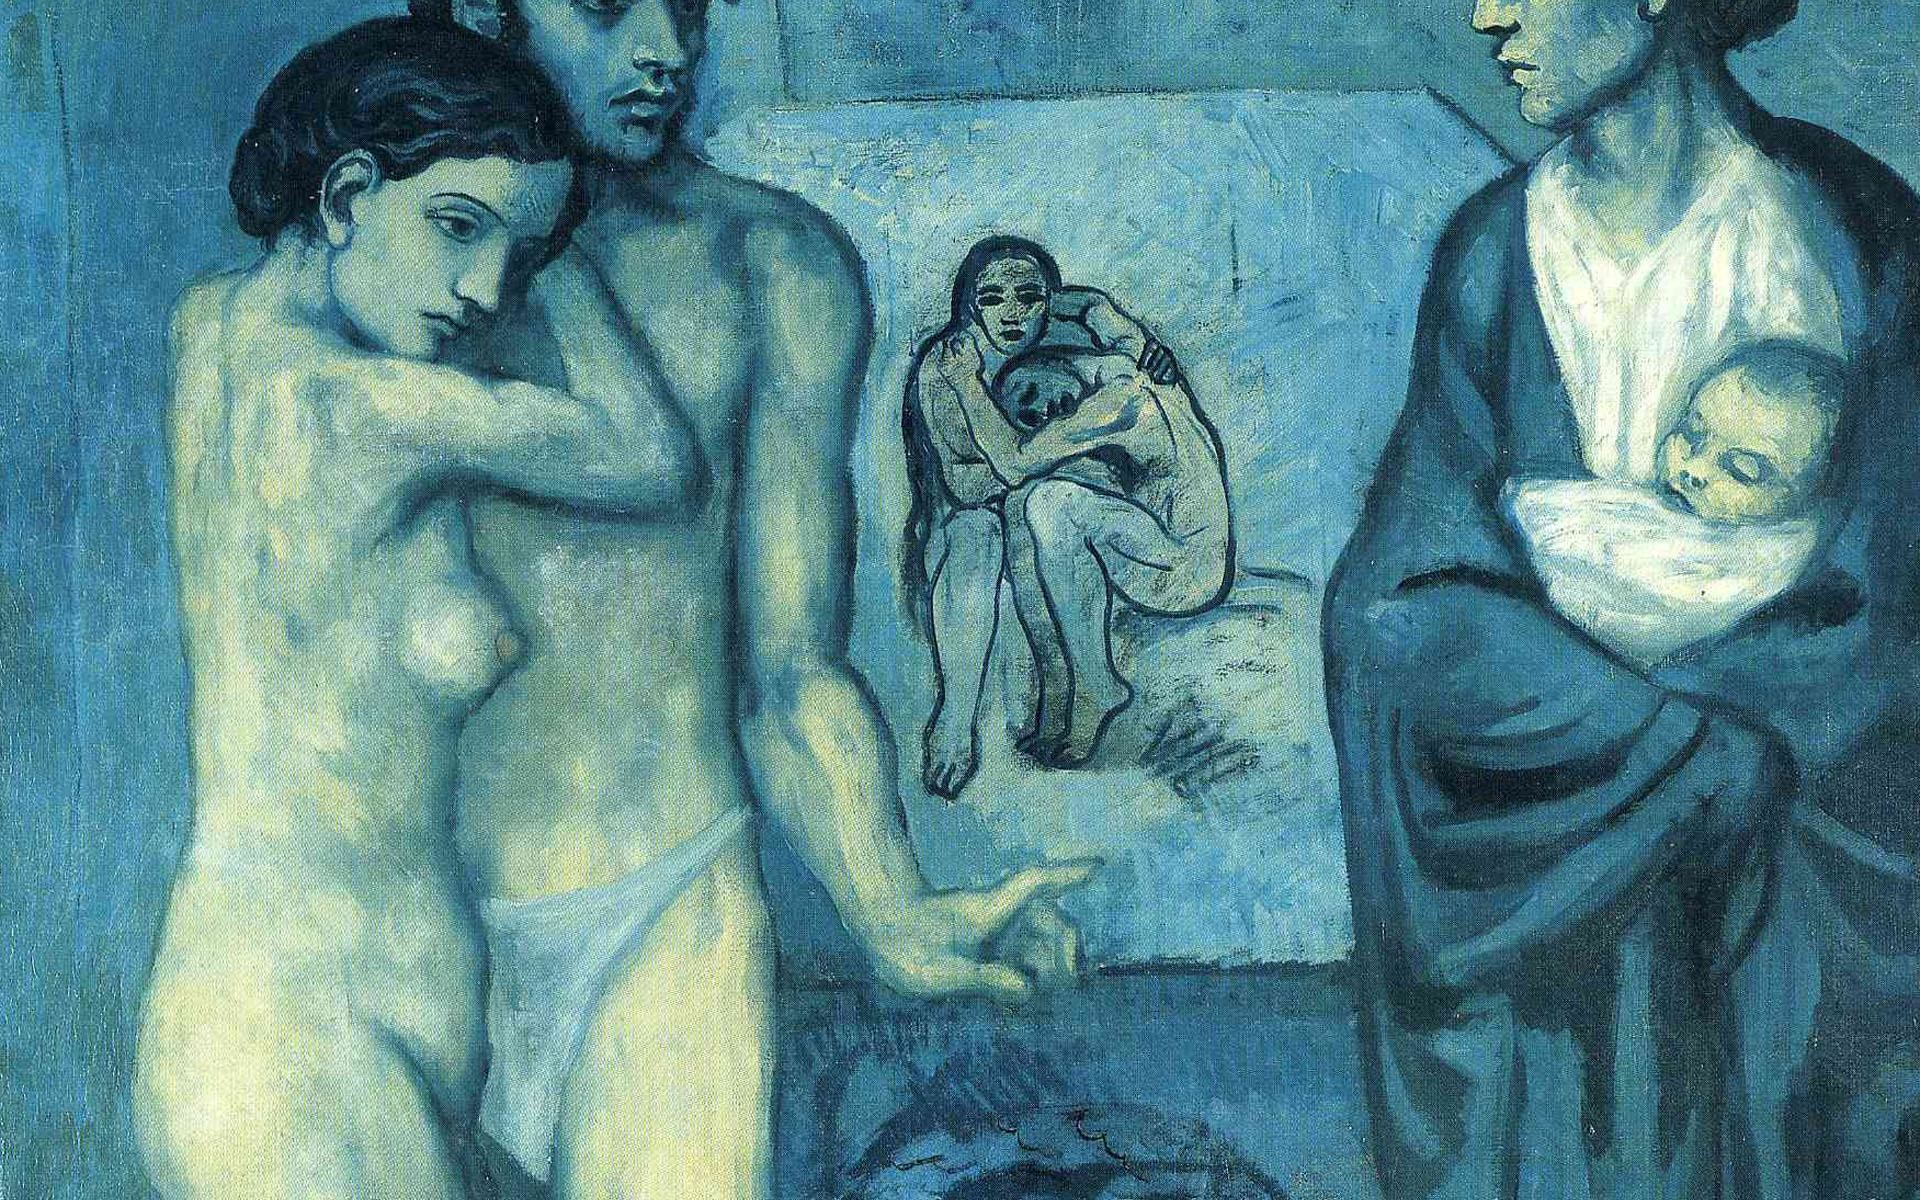 Picasso Wallpapers 51 Pictures HD Wallpapers Download Free Images Wallpaper [1000image.com]